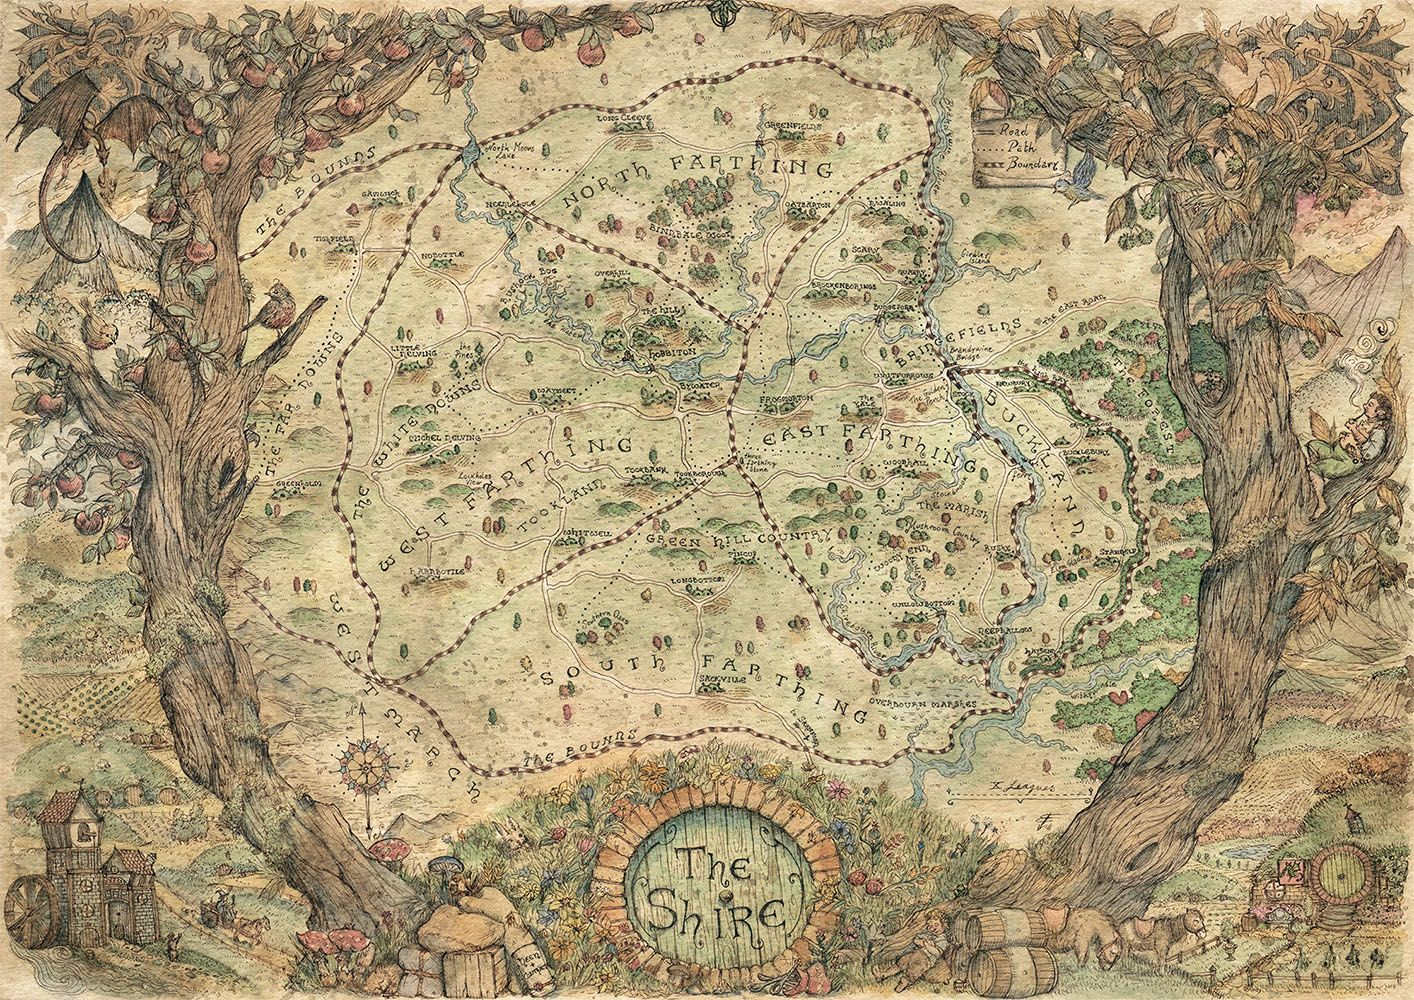 Map fo the Shire Lord of